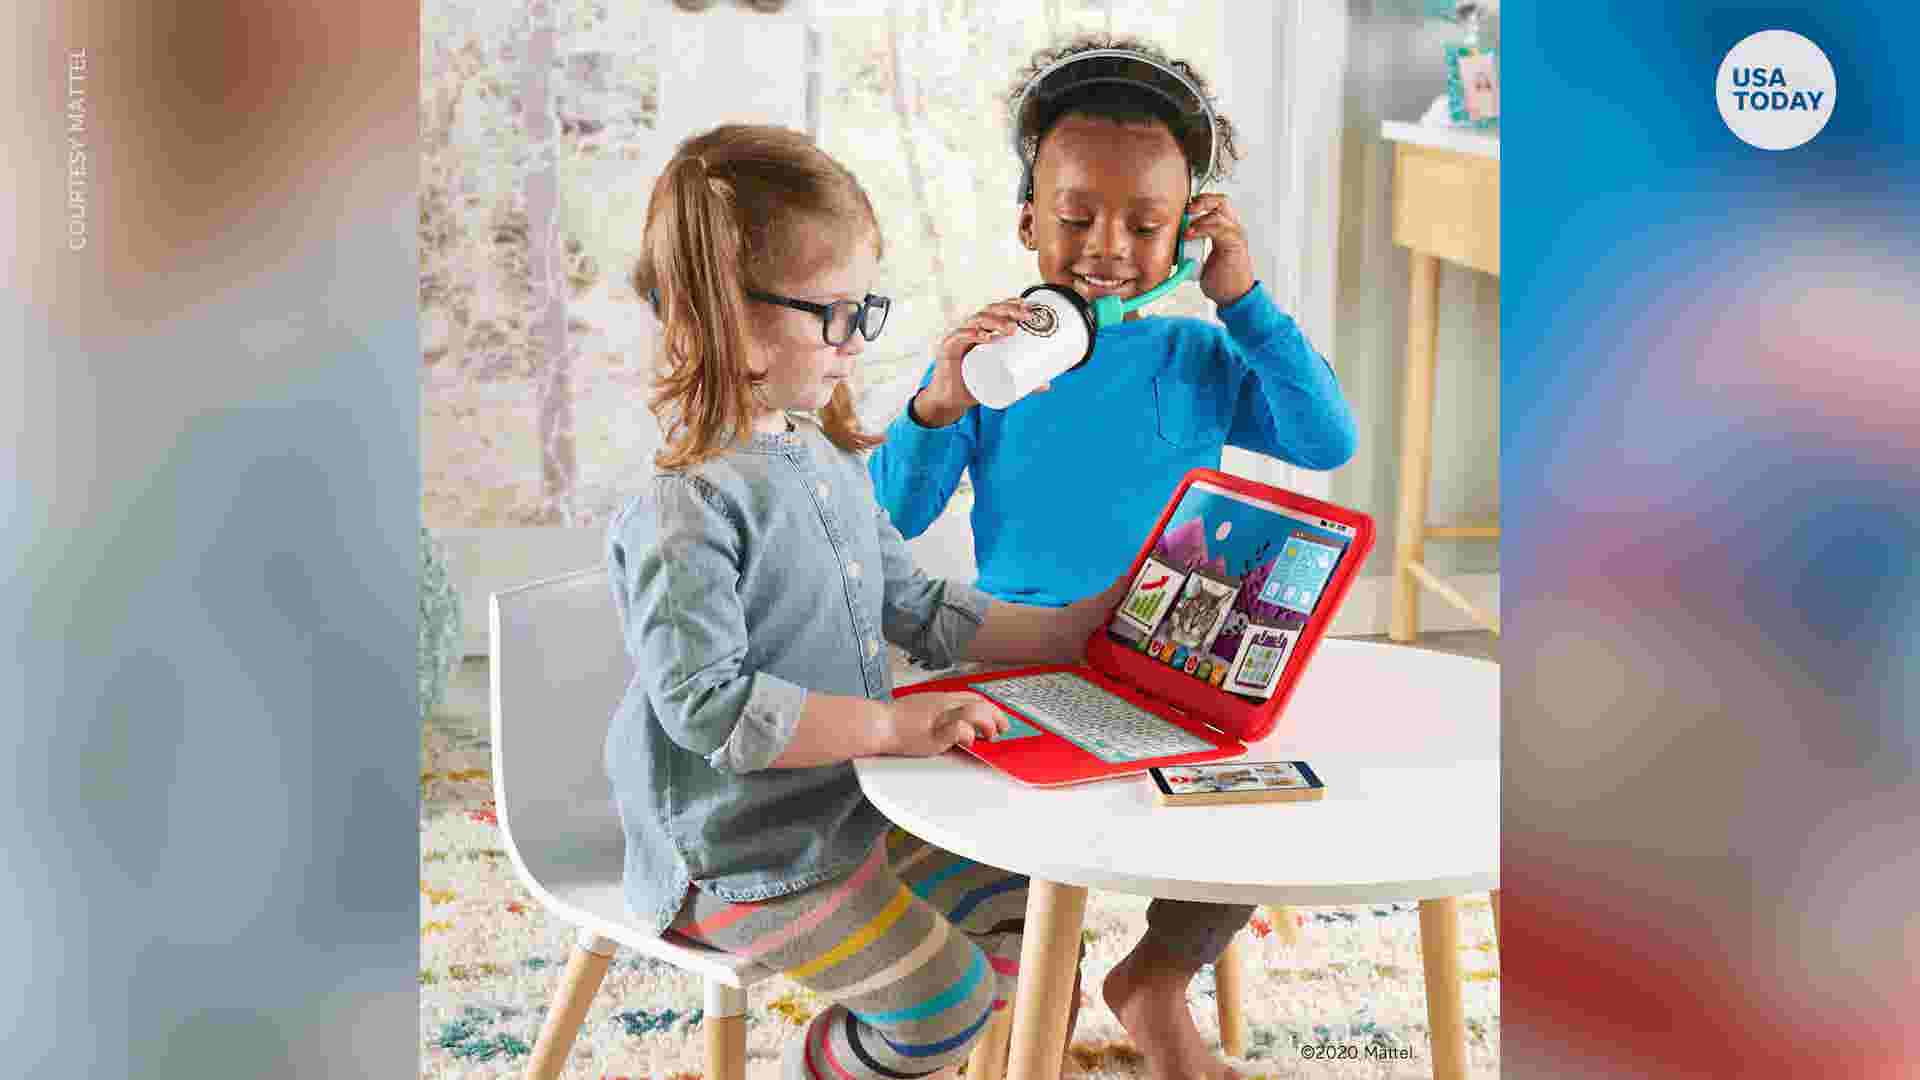 Fisher-Price's new stay-at-home toys mirror what mom and dad do at home